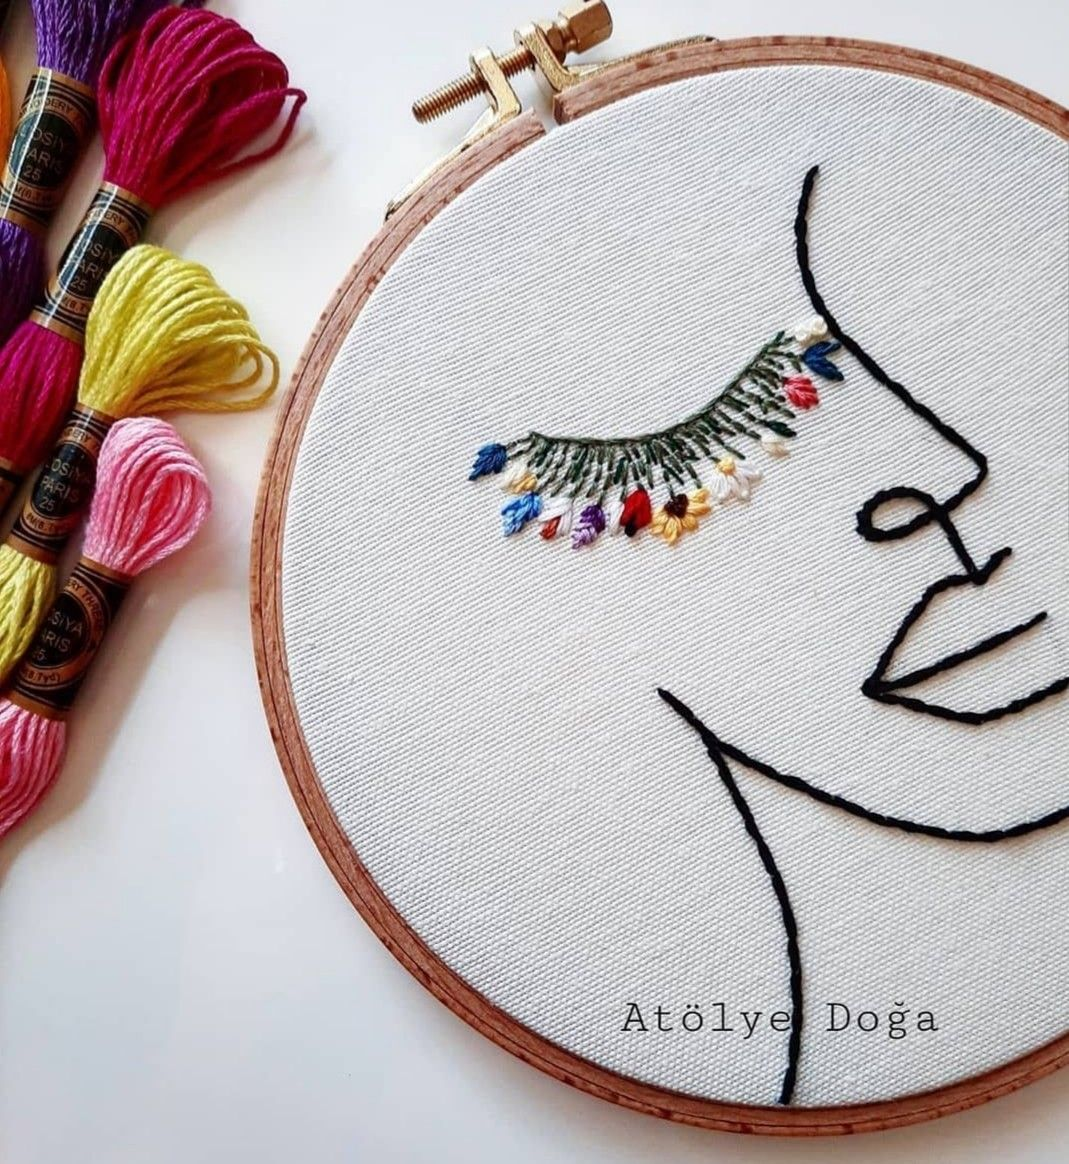 Aesthetic embroidery designs